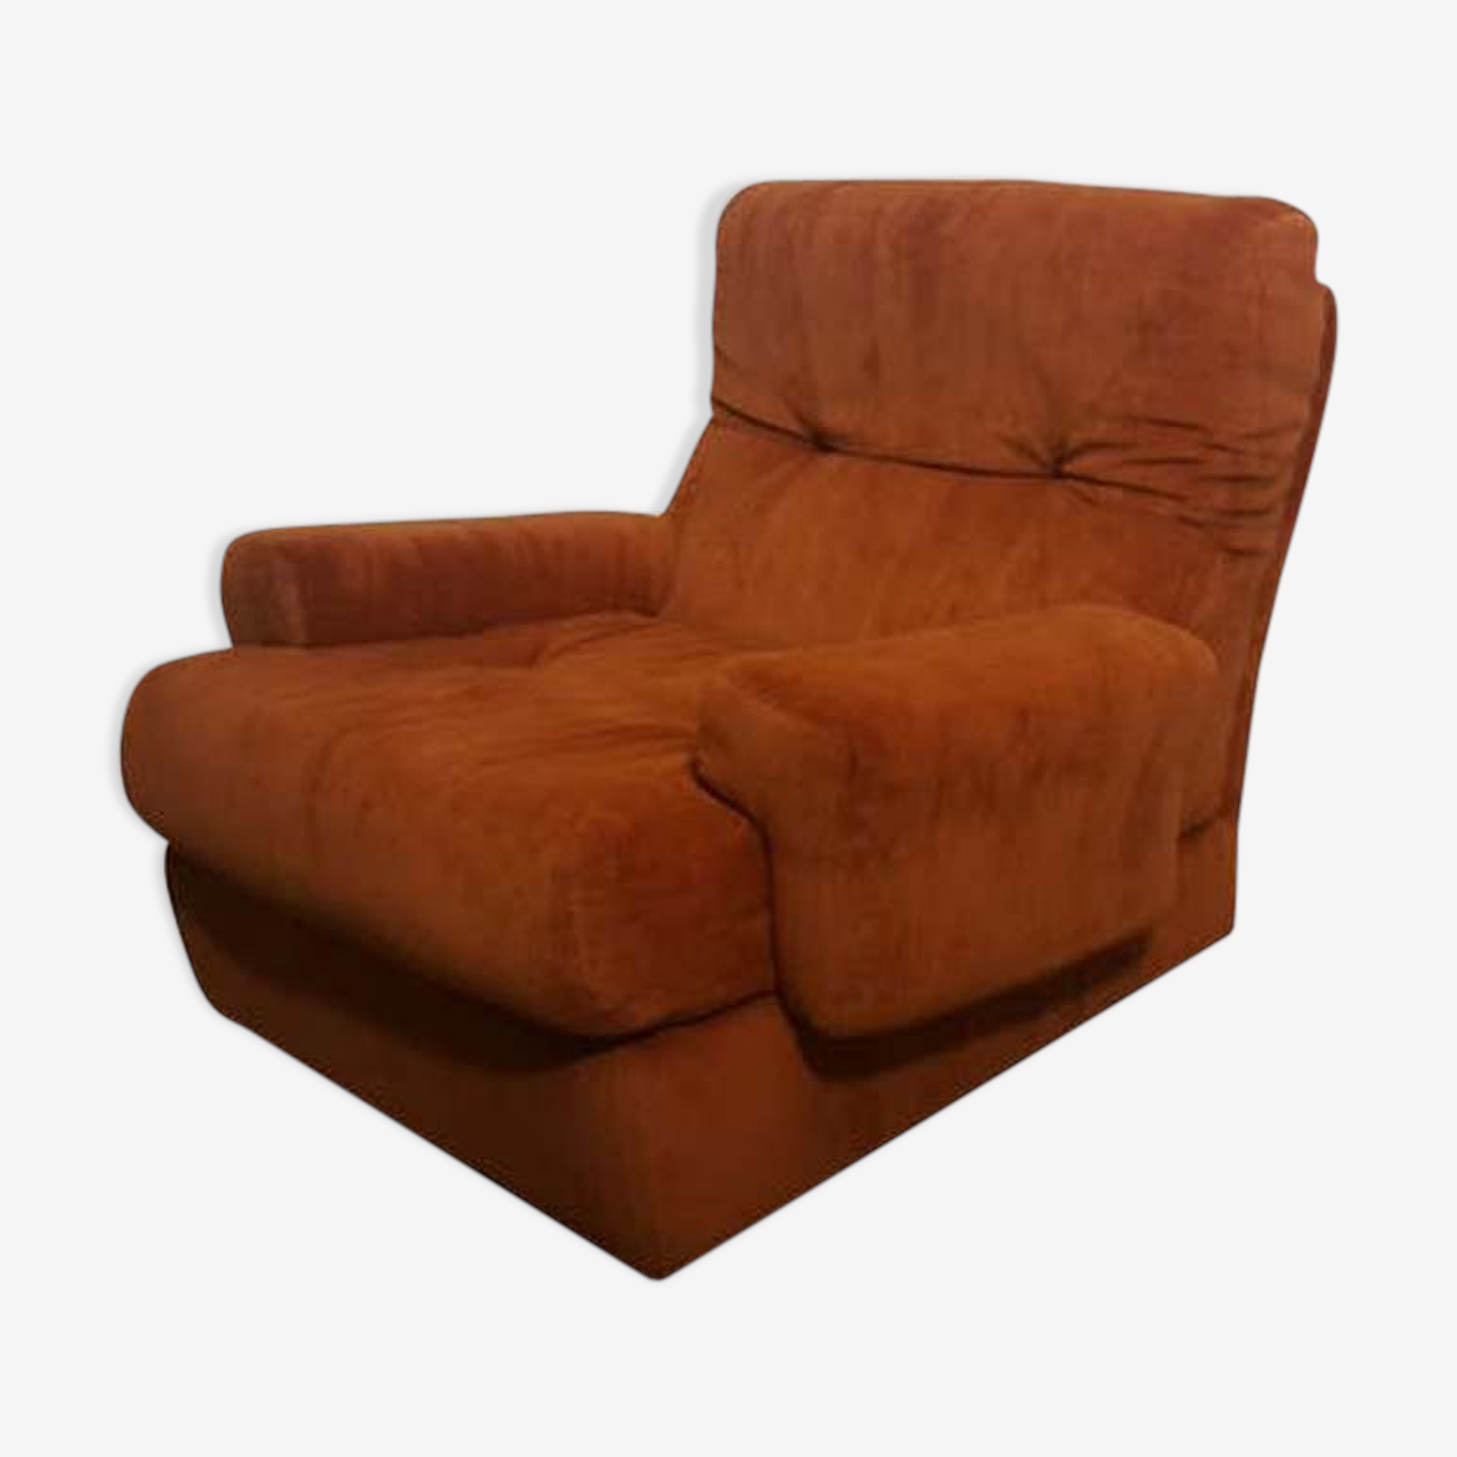 Fauteuil chauffeuse Steiner